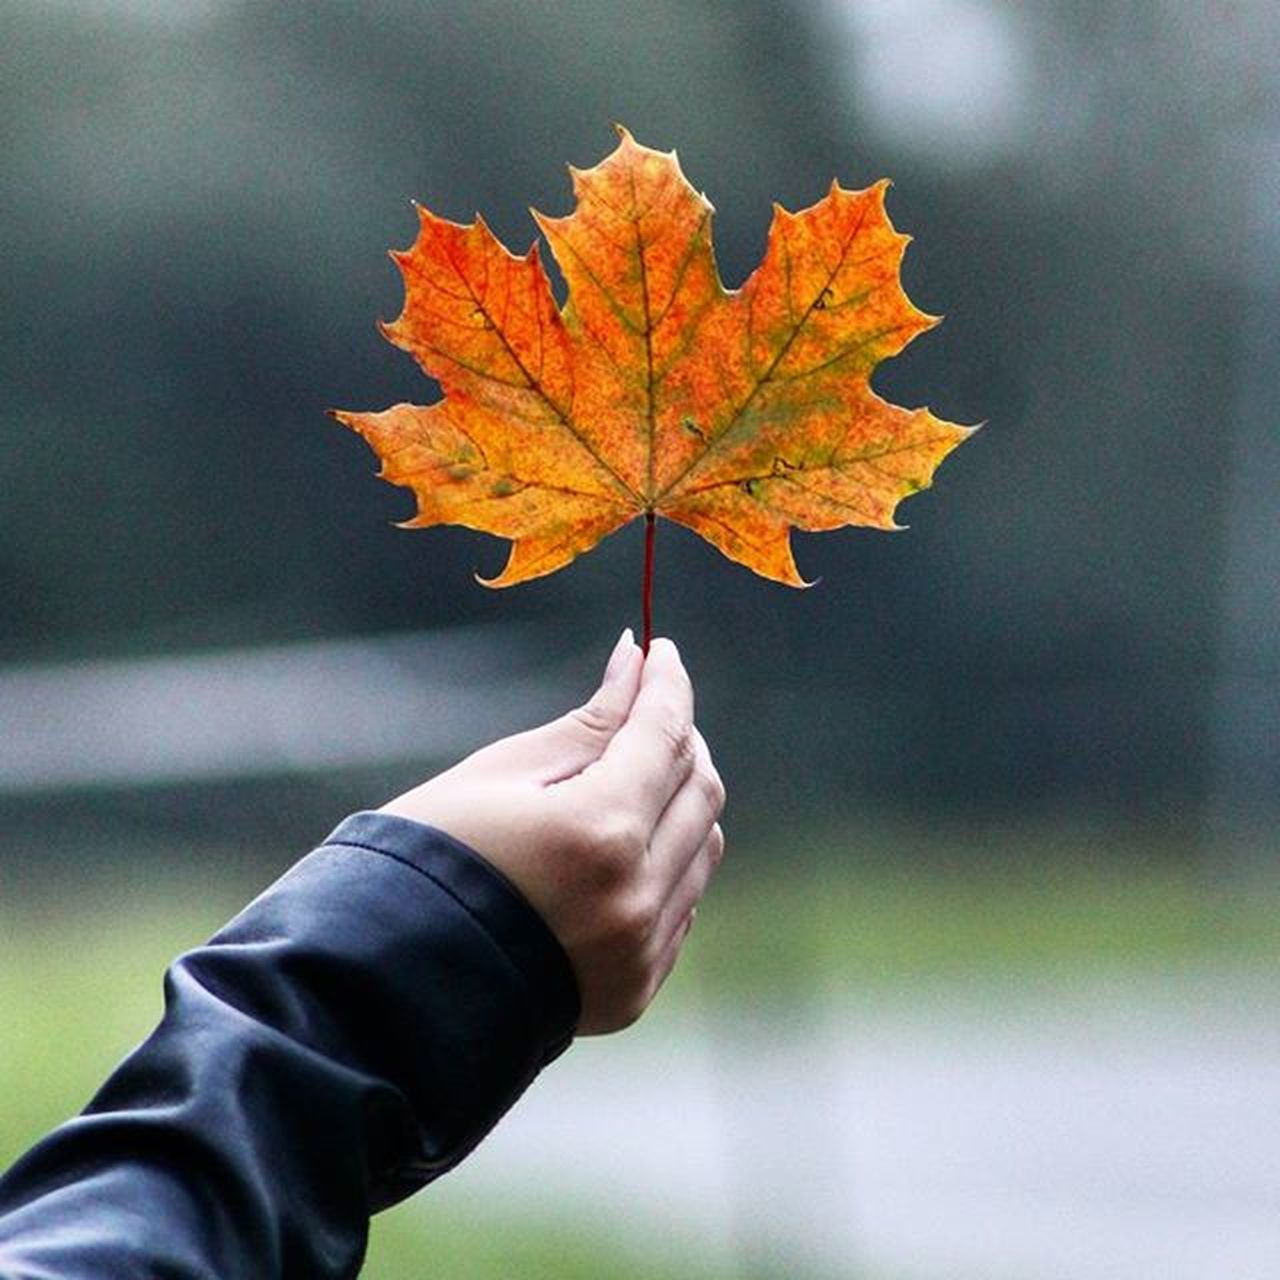 autumn, leaf, change, human hand, focus on foreground, maple, human body part, maple leaf, day, outdoors, nature, close-up, one person, beauty in nature, real people, people